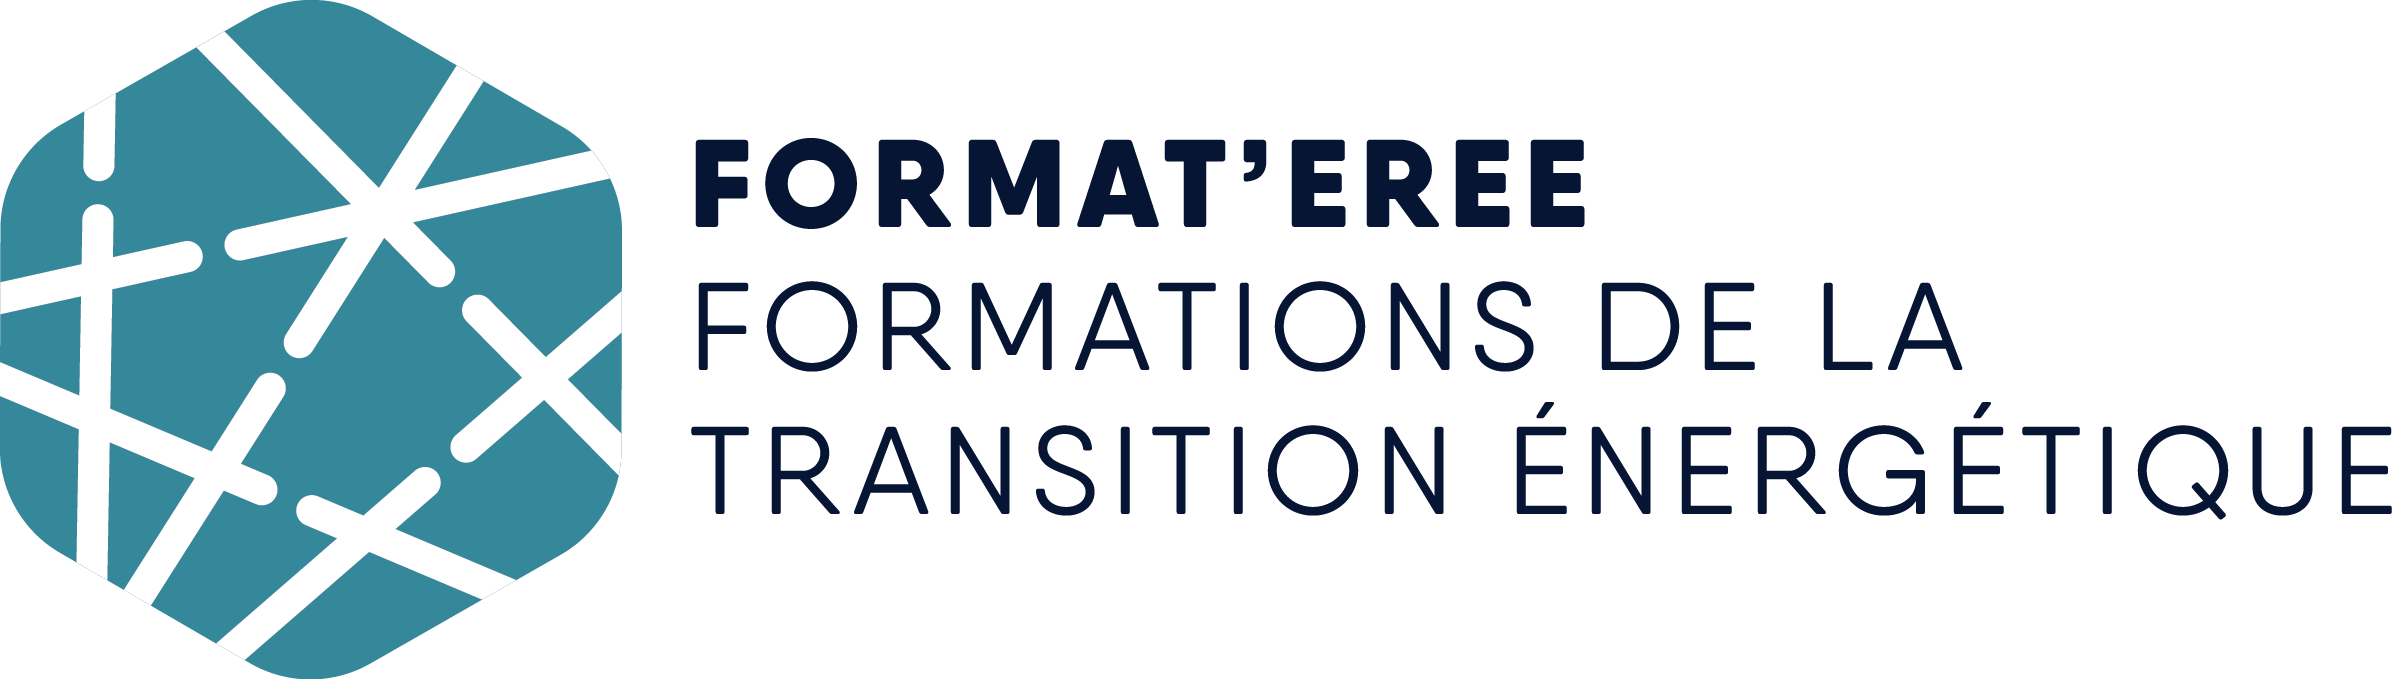 https://cler.org/wp-content/uploads/2017/04/Formateree-logo-hd.png